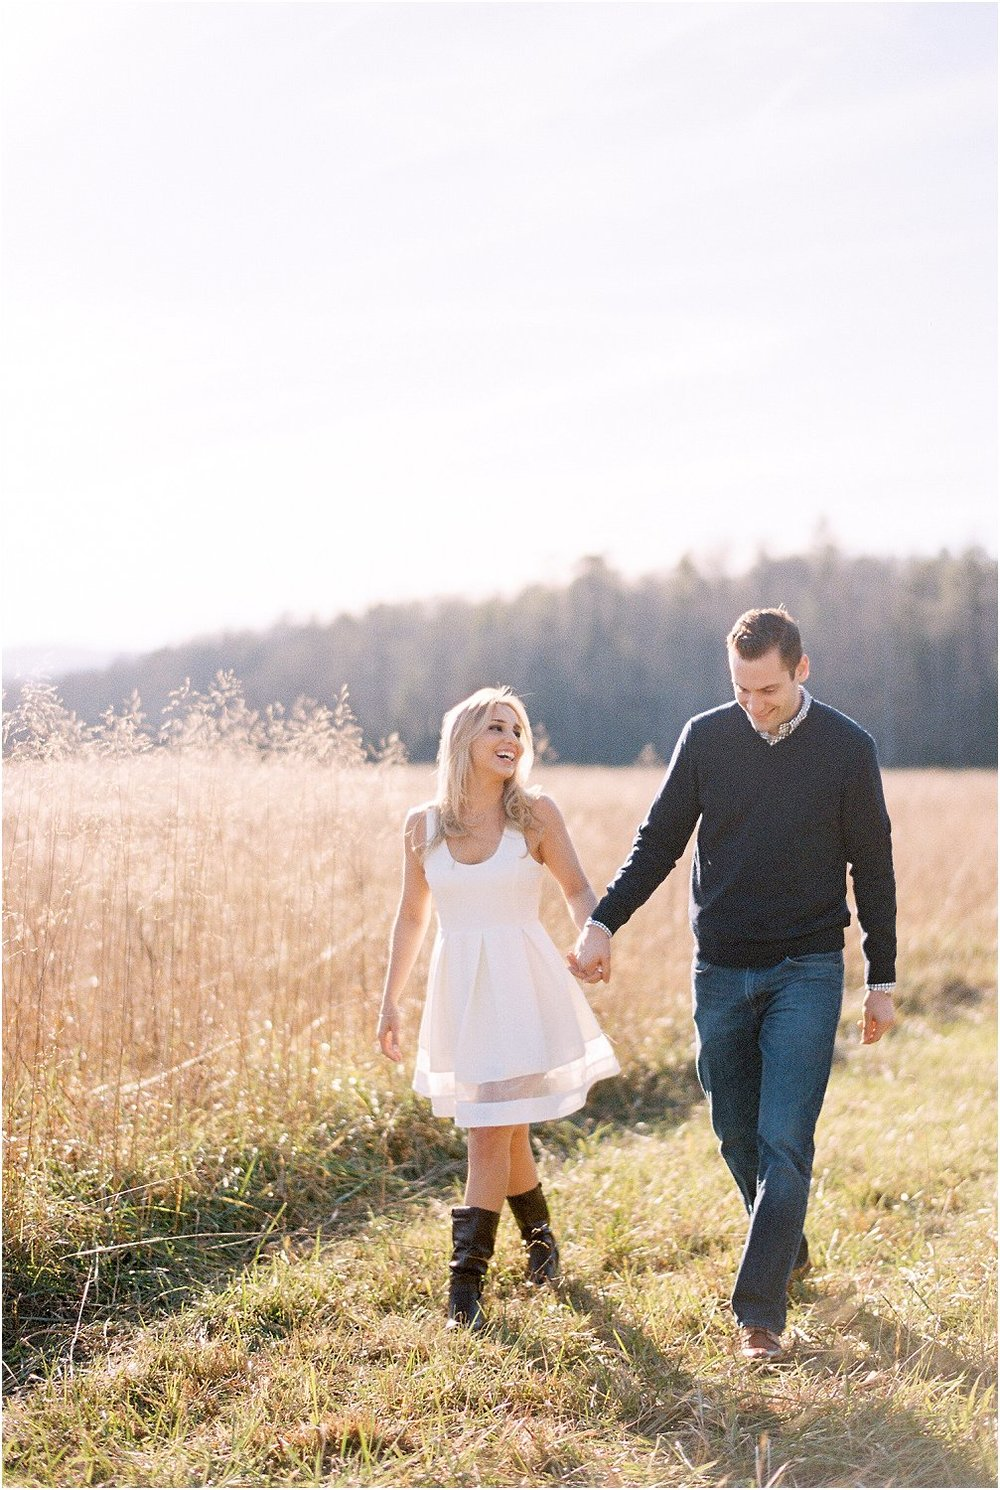 Cades Cove Smoky Mountain Engagement | Robertha & Wes | Smoky Mountain Wedding Photographer